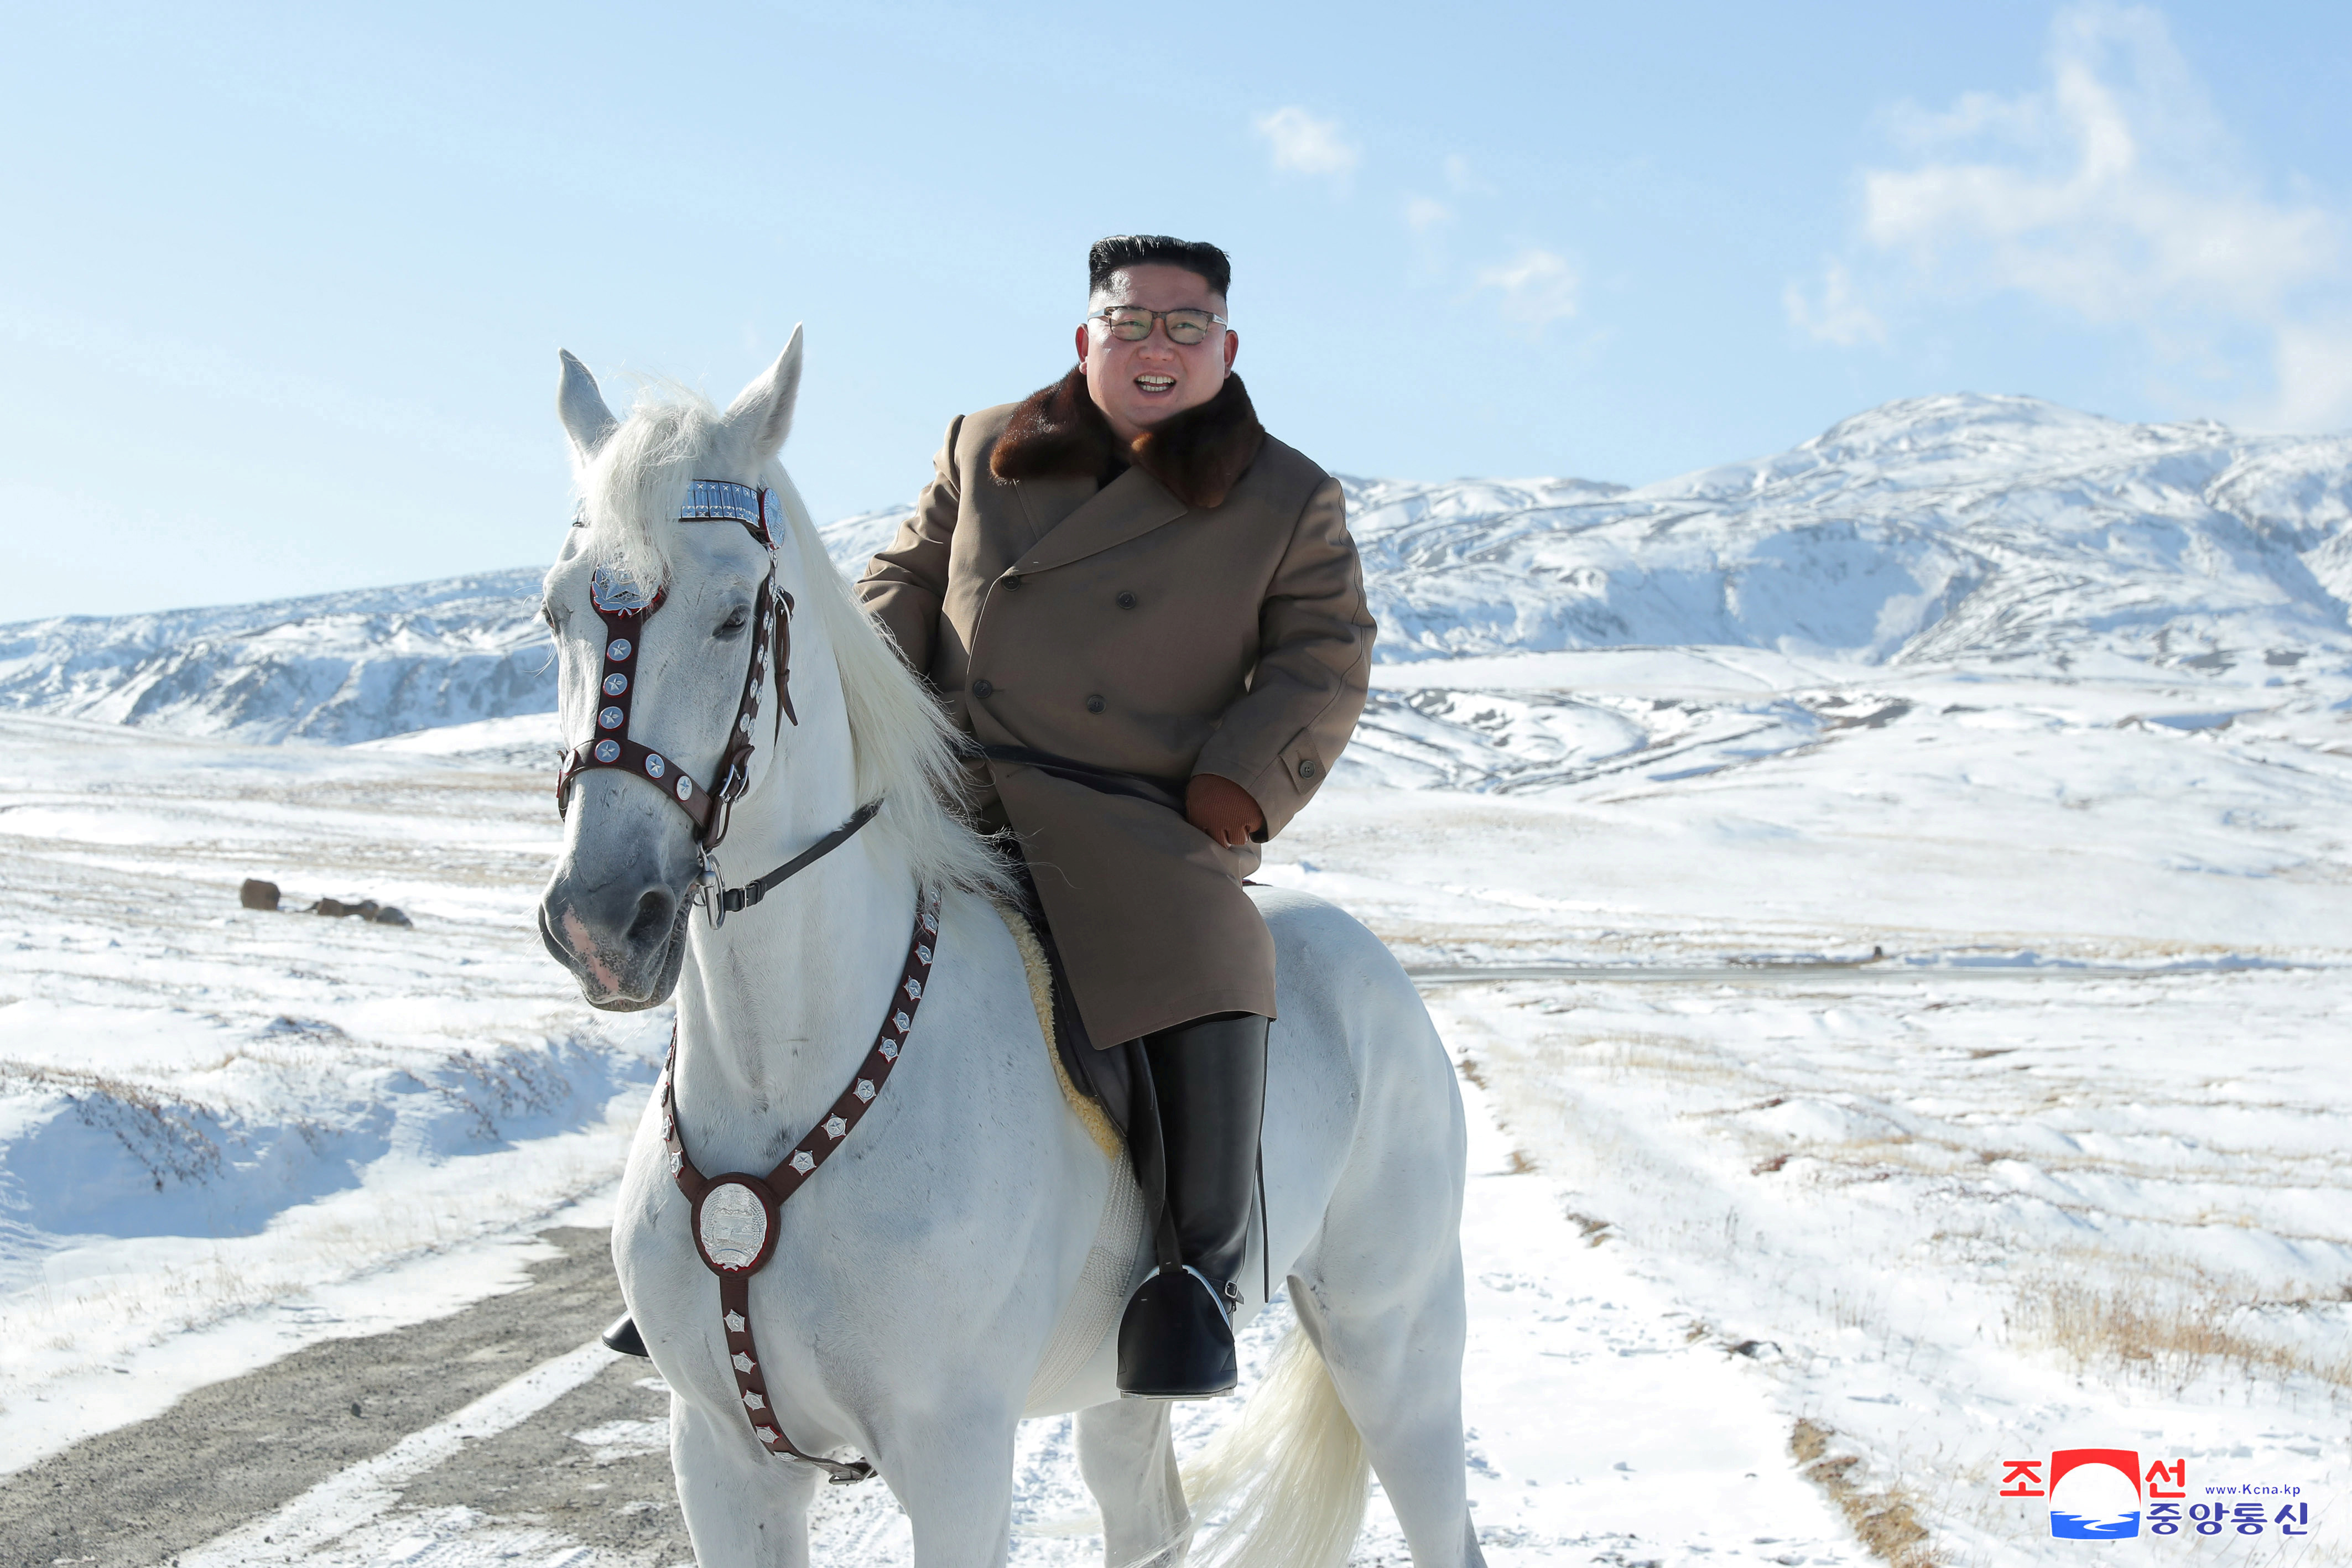 Kim Jong Un was recently pictured riding a horse in a series of propoganda photos released by North Korea. (Reuters/KCNA KCNA)